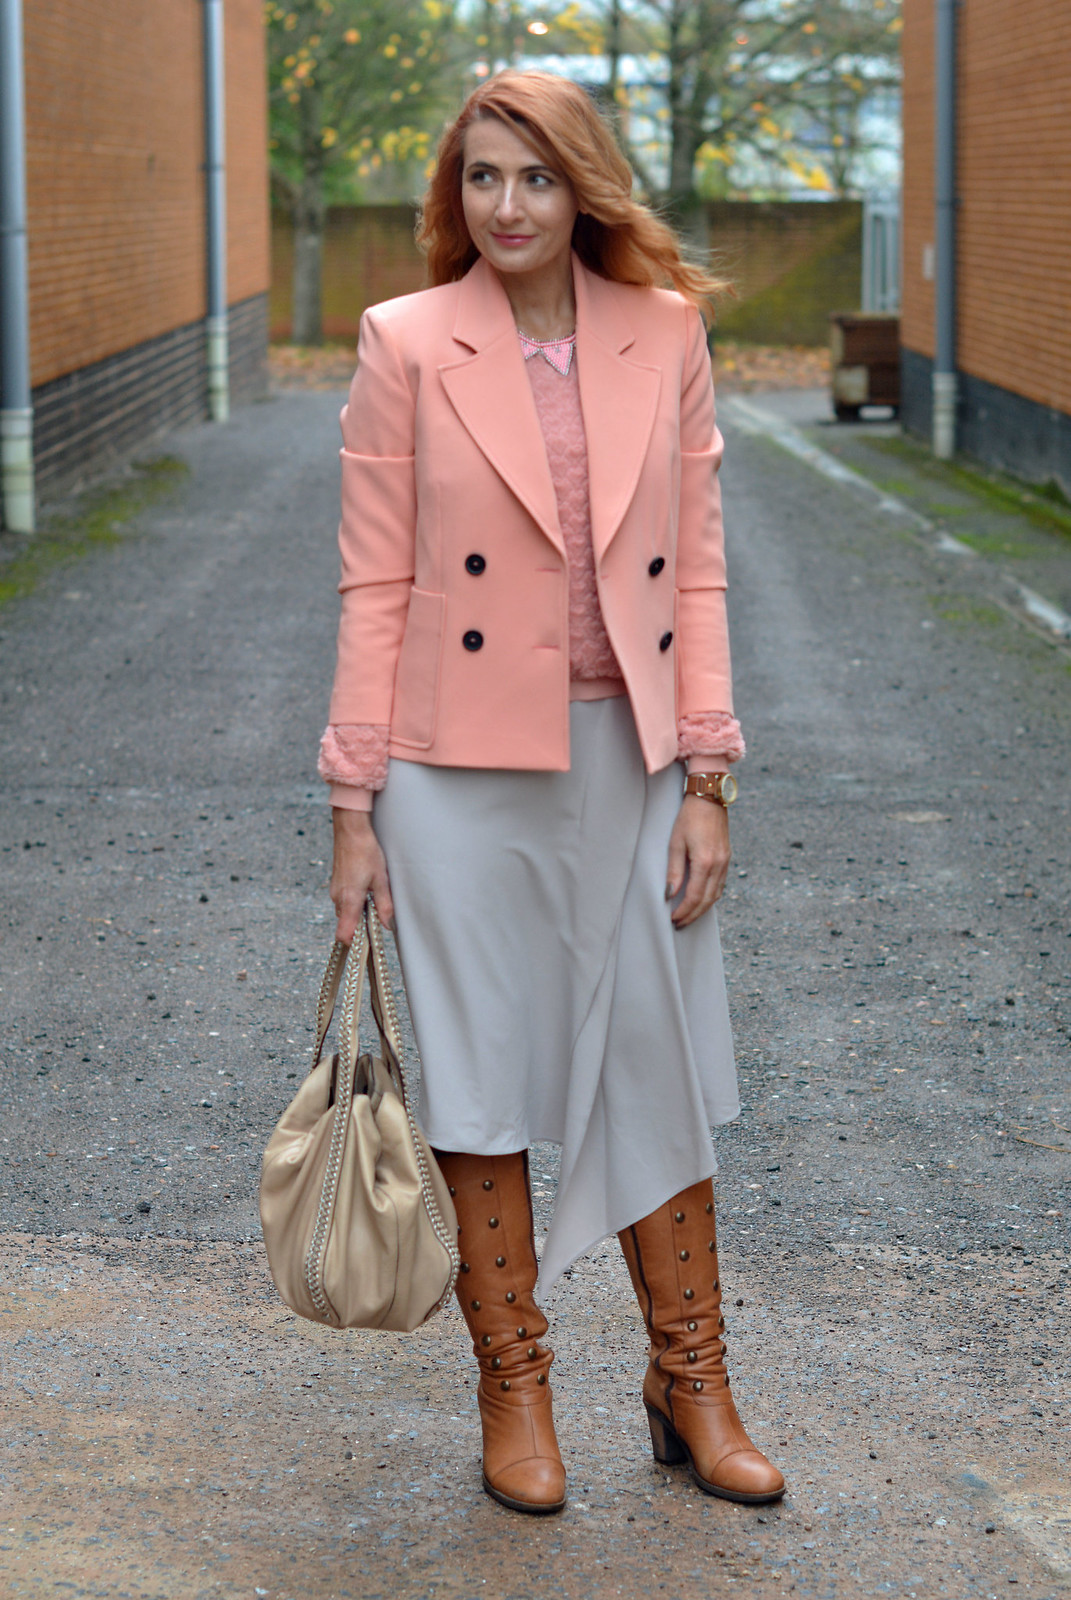 Peach tailored jacket, grey midi skirt, tan boots